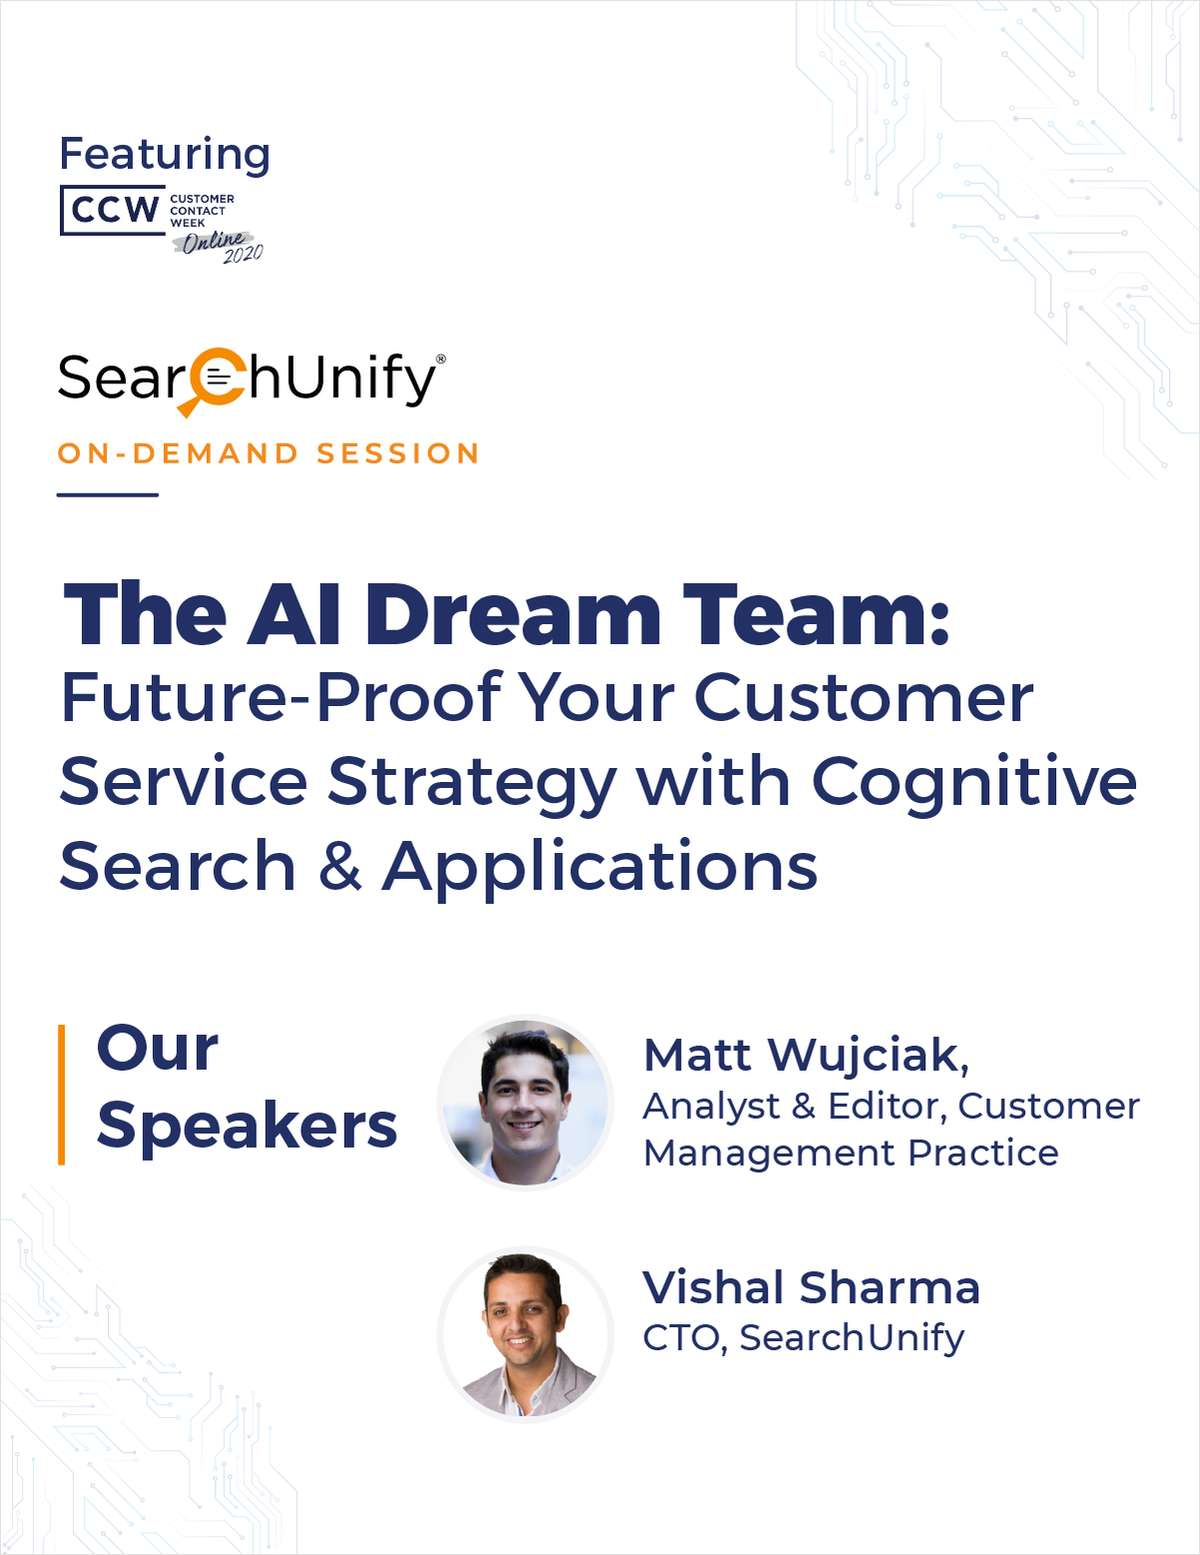 The AI Dream Team: Future-Proof Your Customer Service Strategy With Cognitive Search & Applications